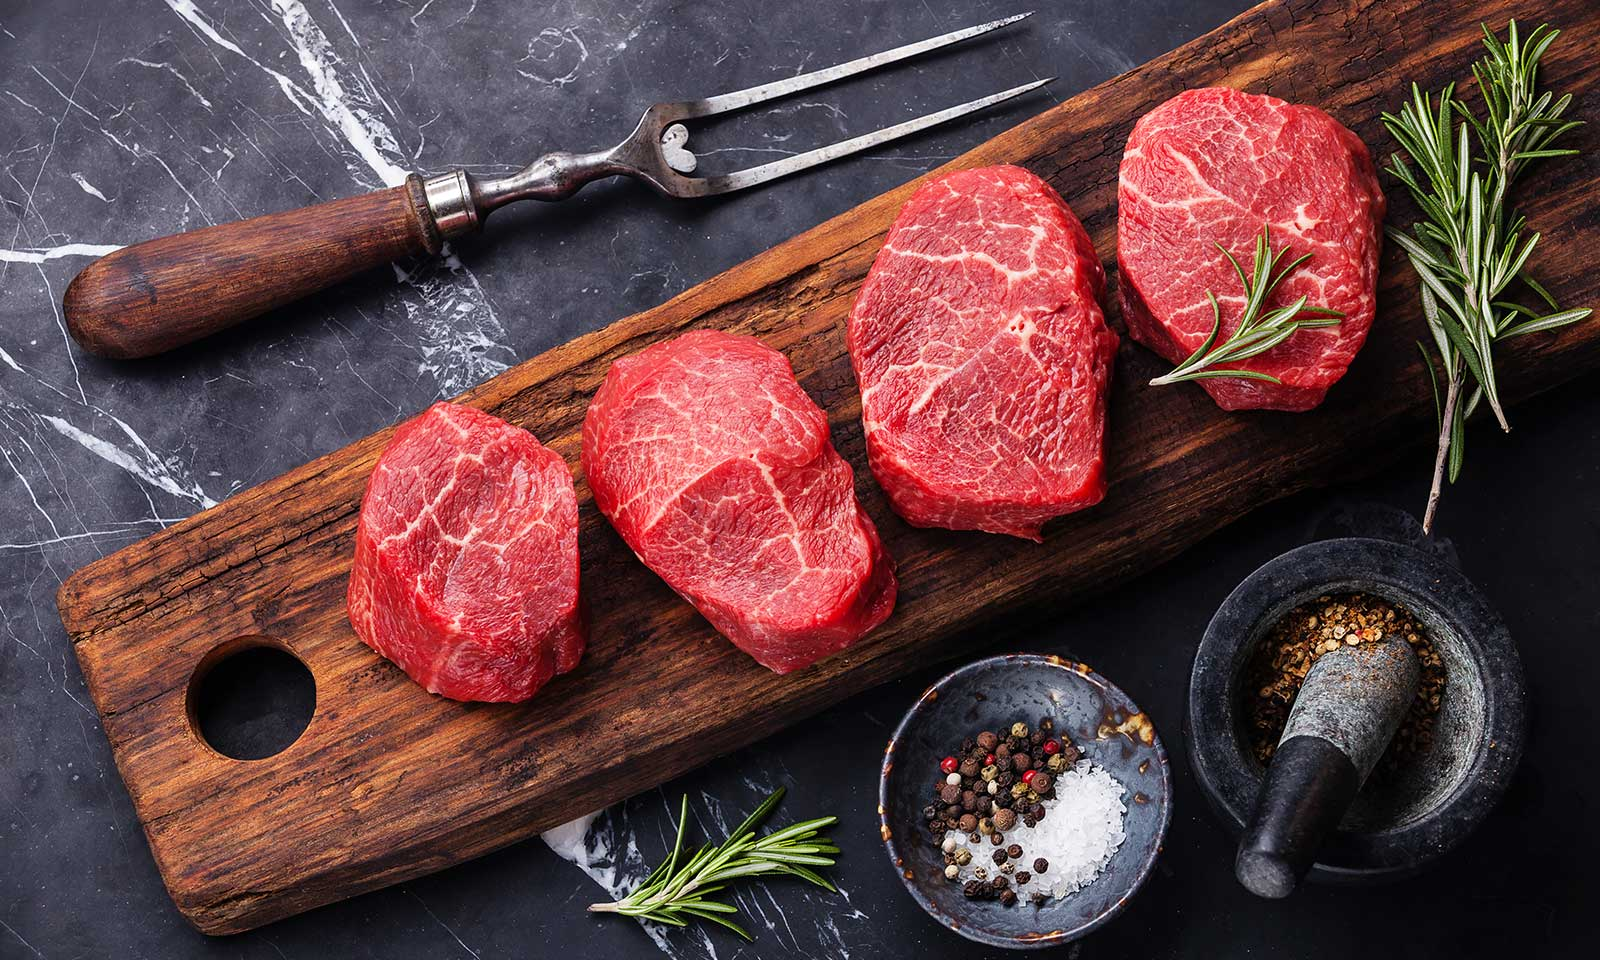 Five Great Reasons To Eat Red Meat